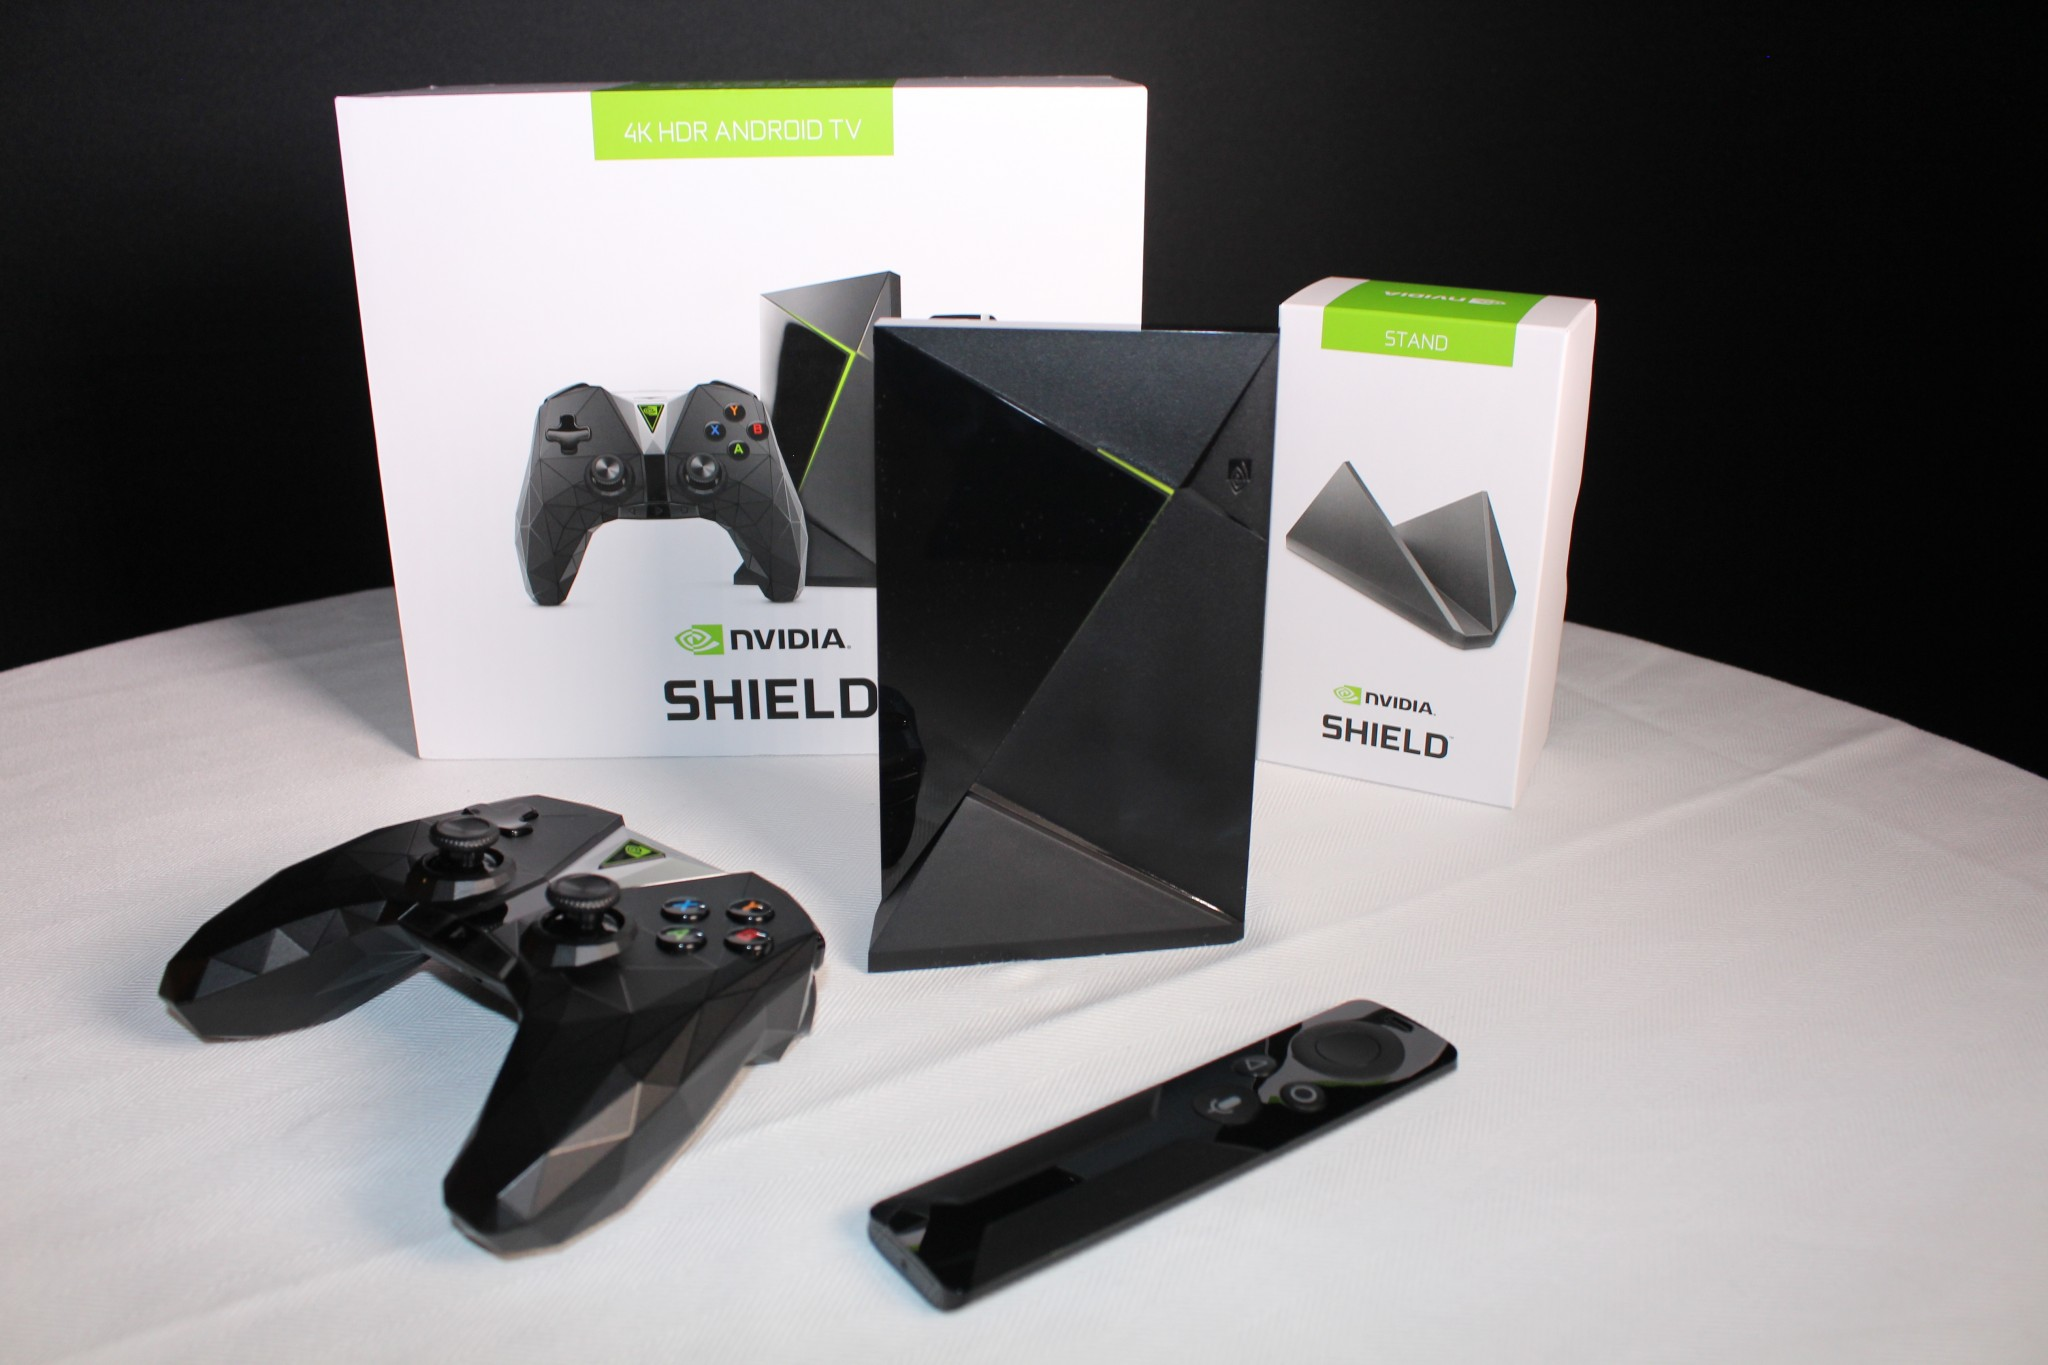 Android TV 8 0 Oreo Is Rolling Out to Nvidia Shield Devices